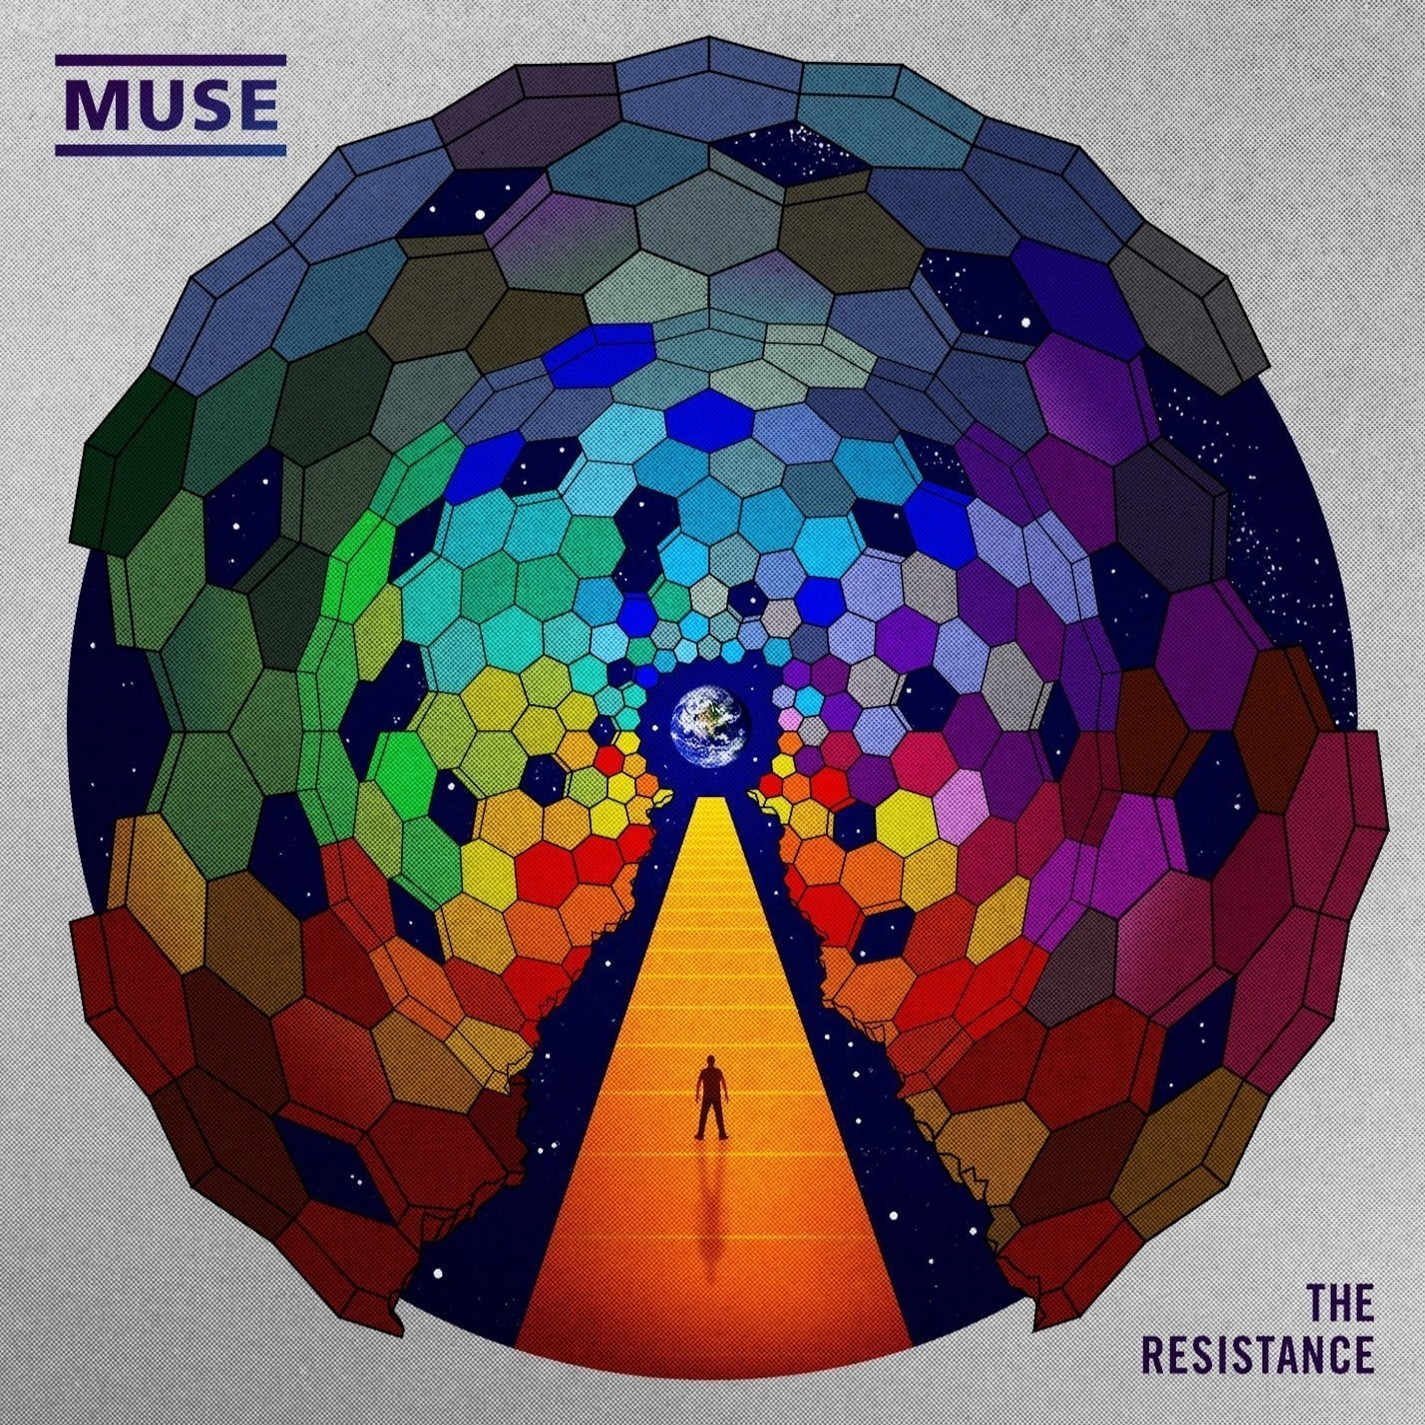 jaquettes2/Muse_The-Resistance.jpg